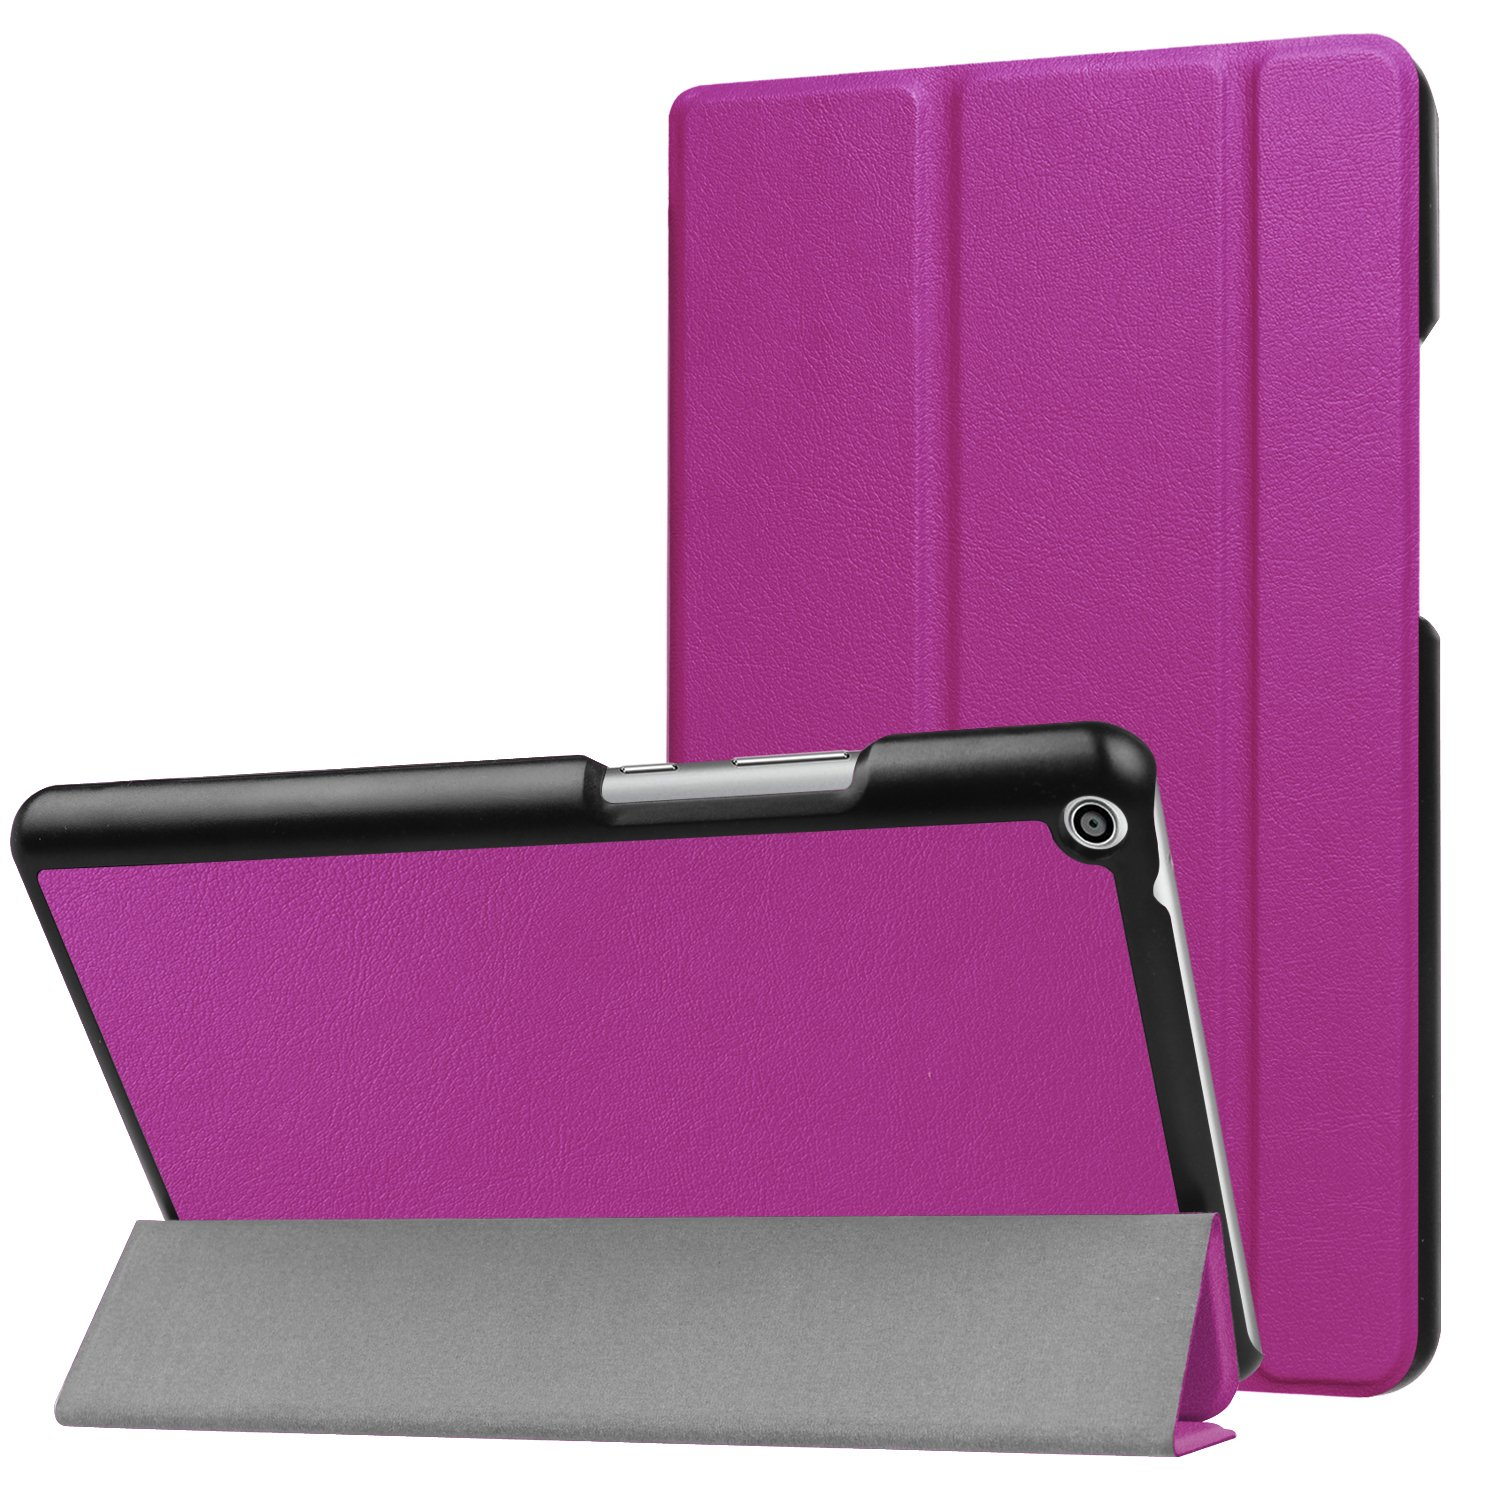 Huawei MediaPad T3 8.0 Case - Ratesell Ultra Slim Fit Auto Wake / Sleep function Protective Durable Premium Leather Stand Folio Case for Huawei MediaPad T3 8.0 Purple by Ratesell